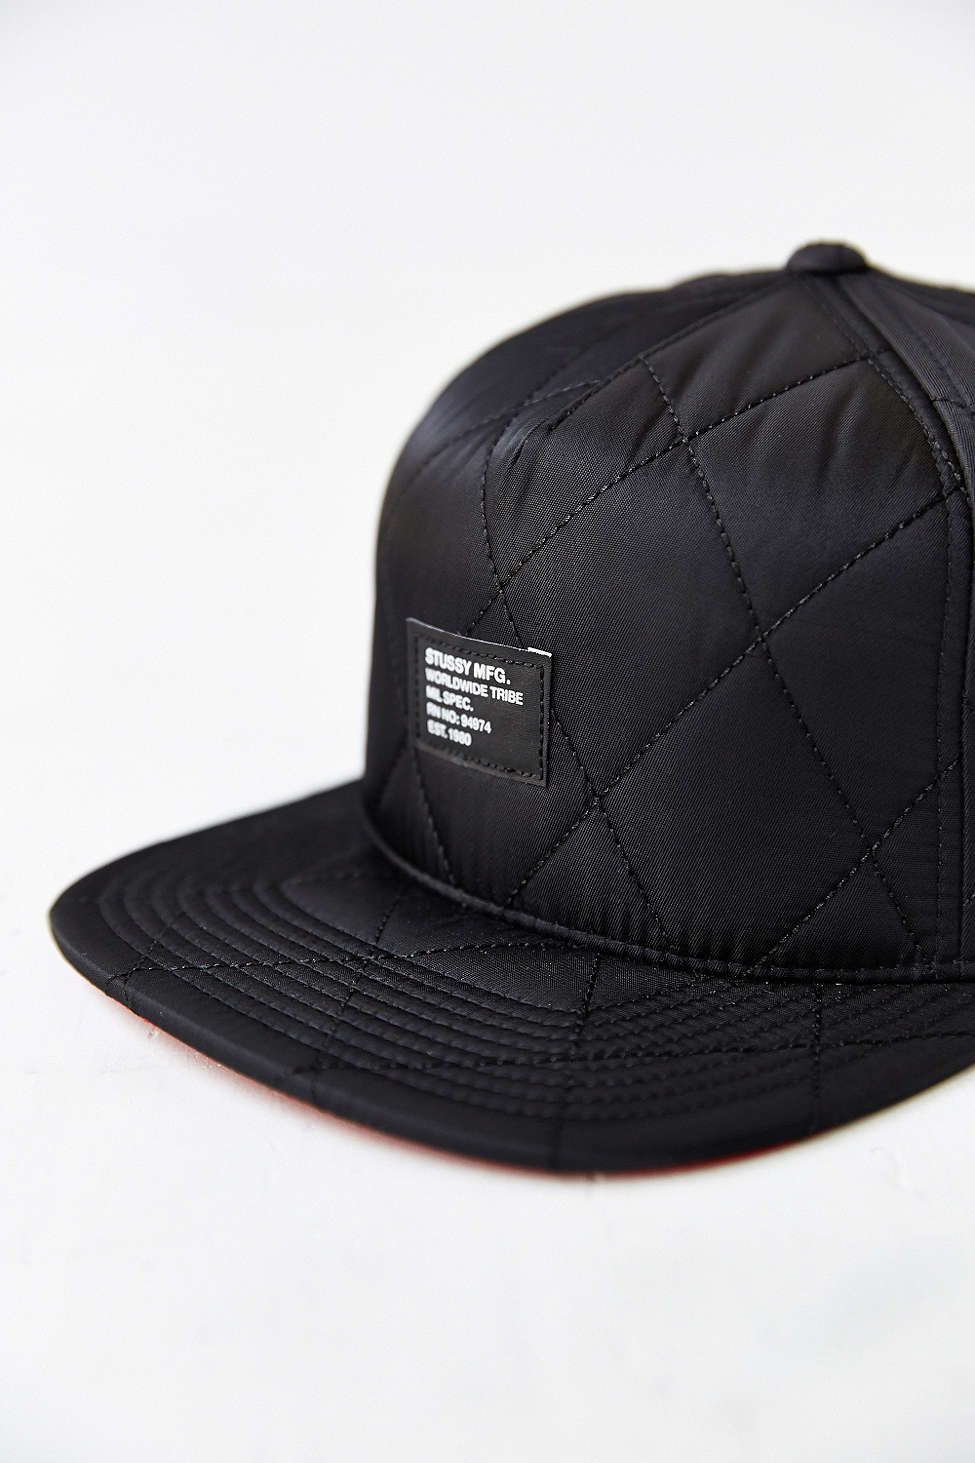 Stussy Quilted Foam Snapback Hat Soletopia Snapback Hats Hats For Men Hats